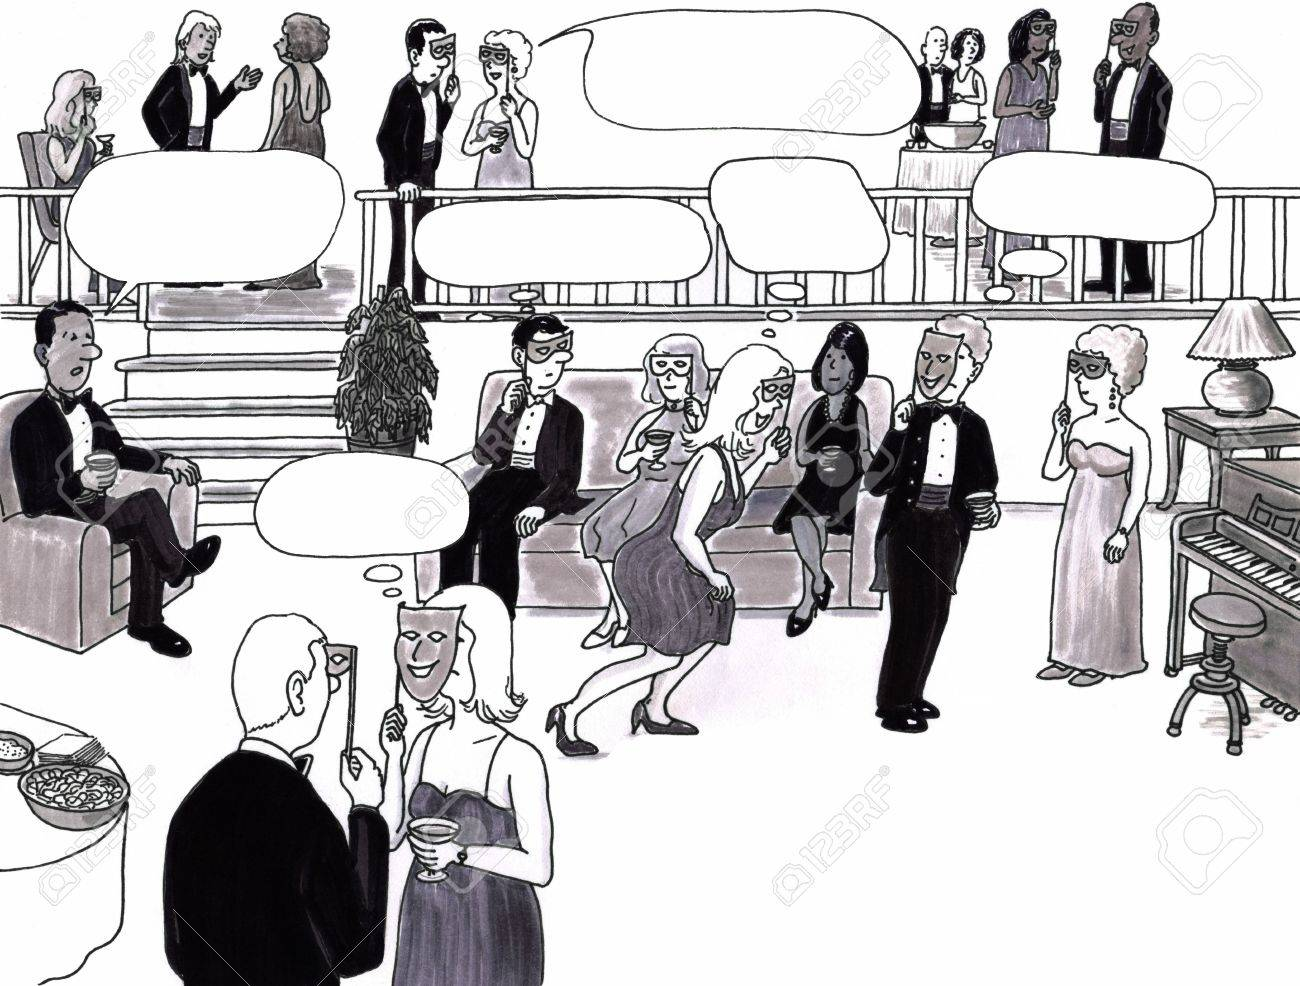 Room full of sophisticated adults in an elegant room at a party socializing. Thought bubble spaces are above some of their heads. Stock Photo - 7333713